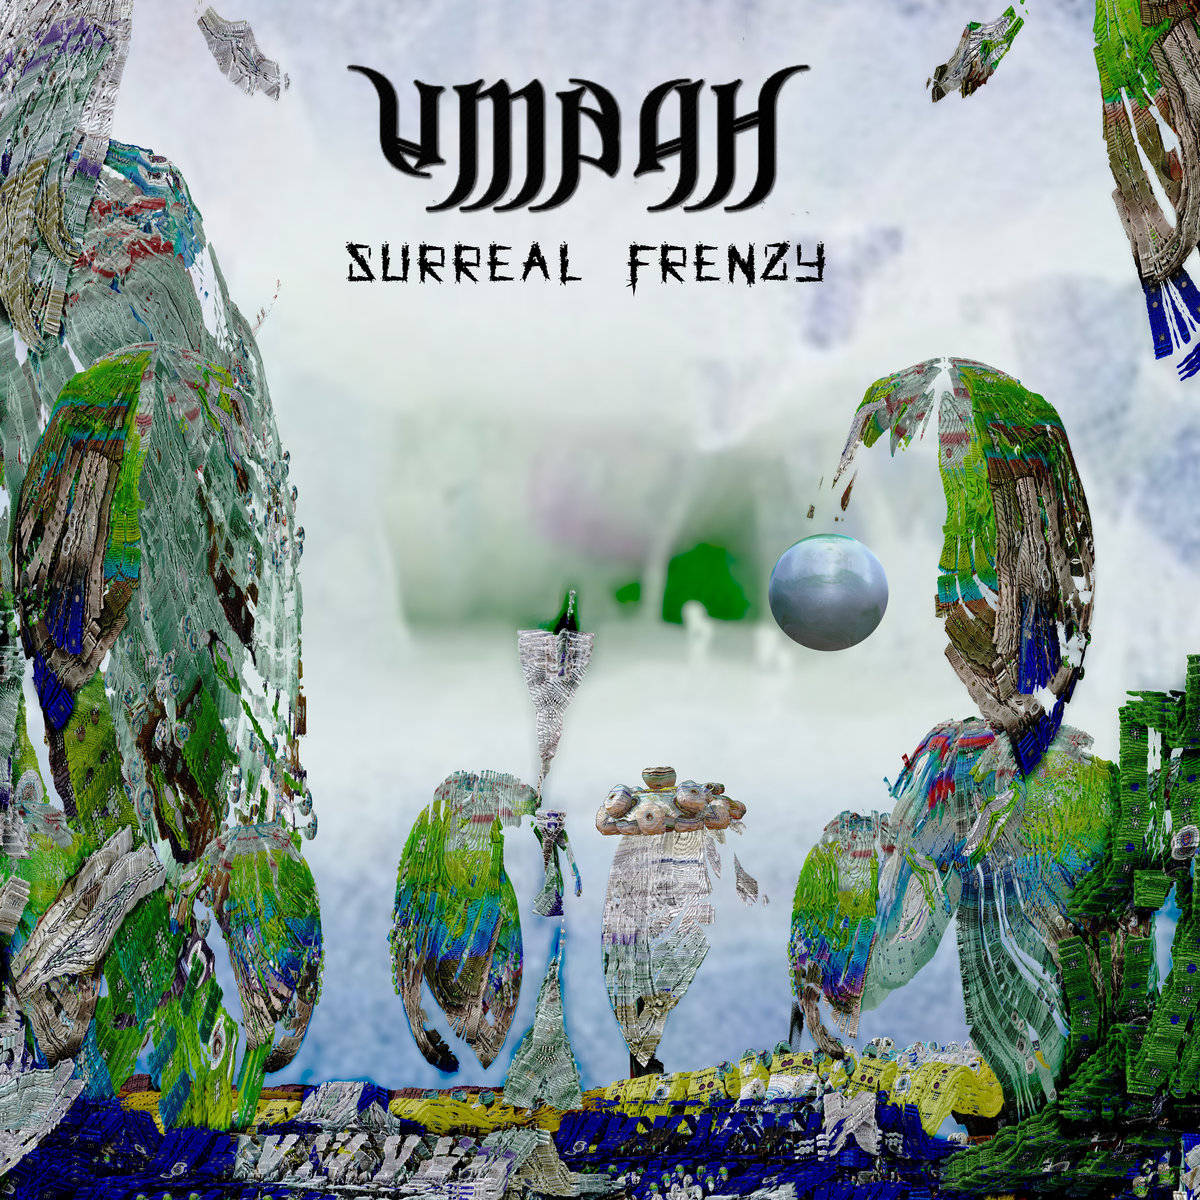 UMBAH - Surreal Frenzy cover